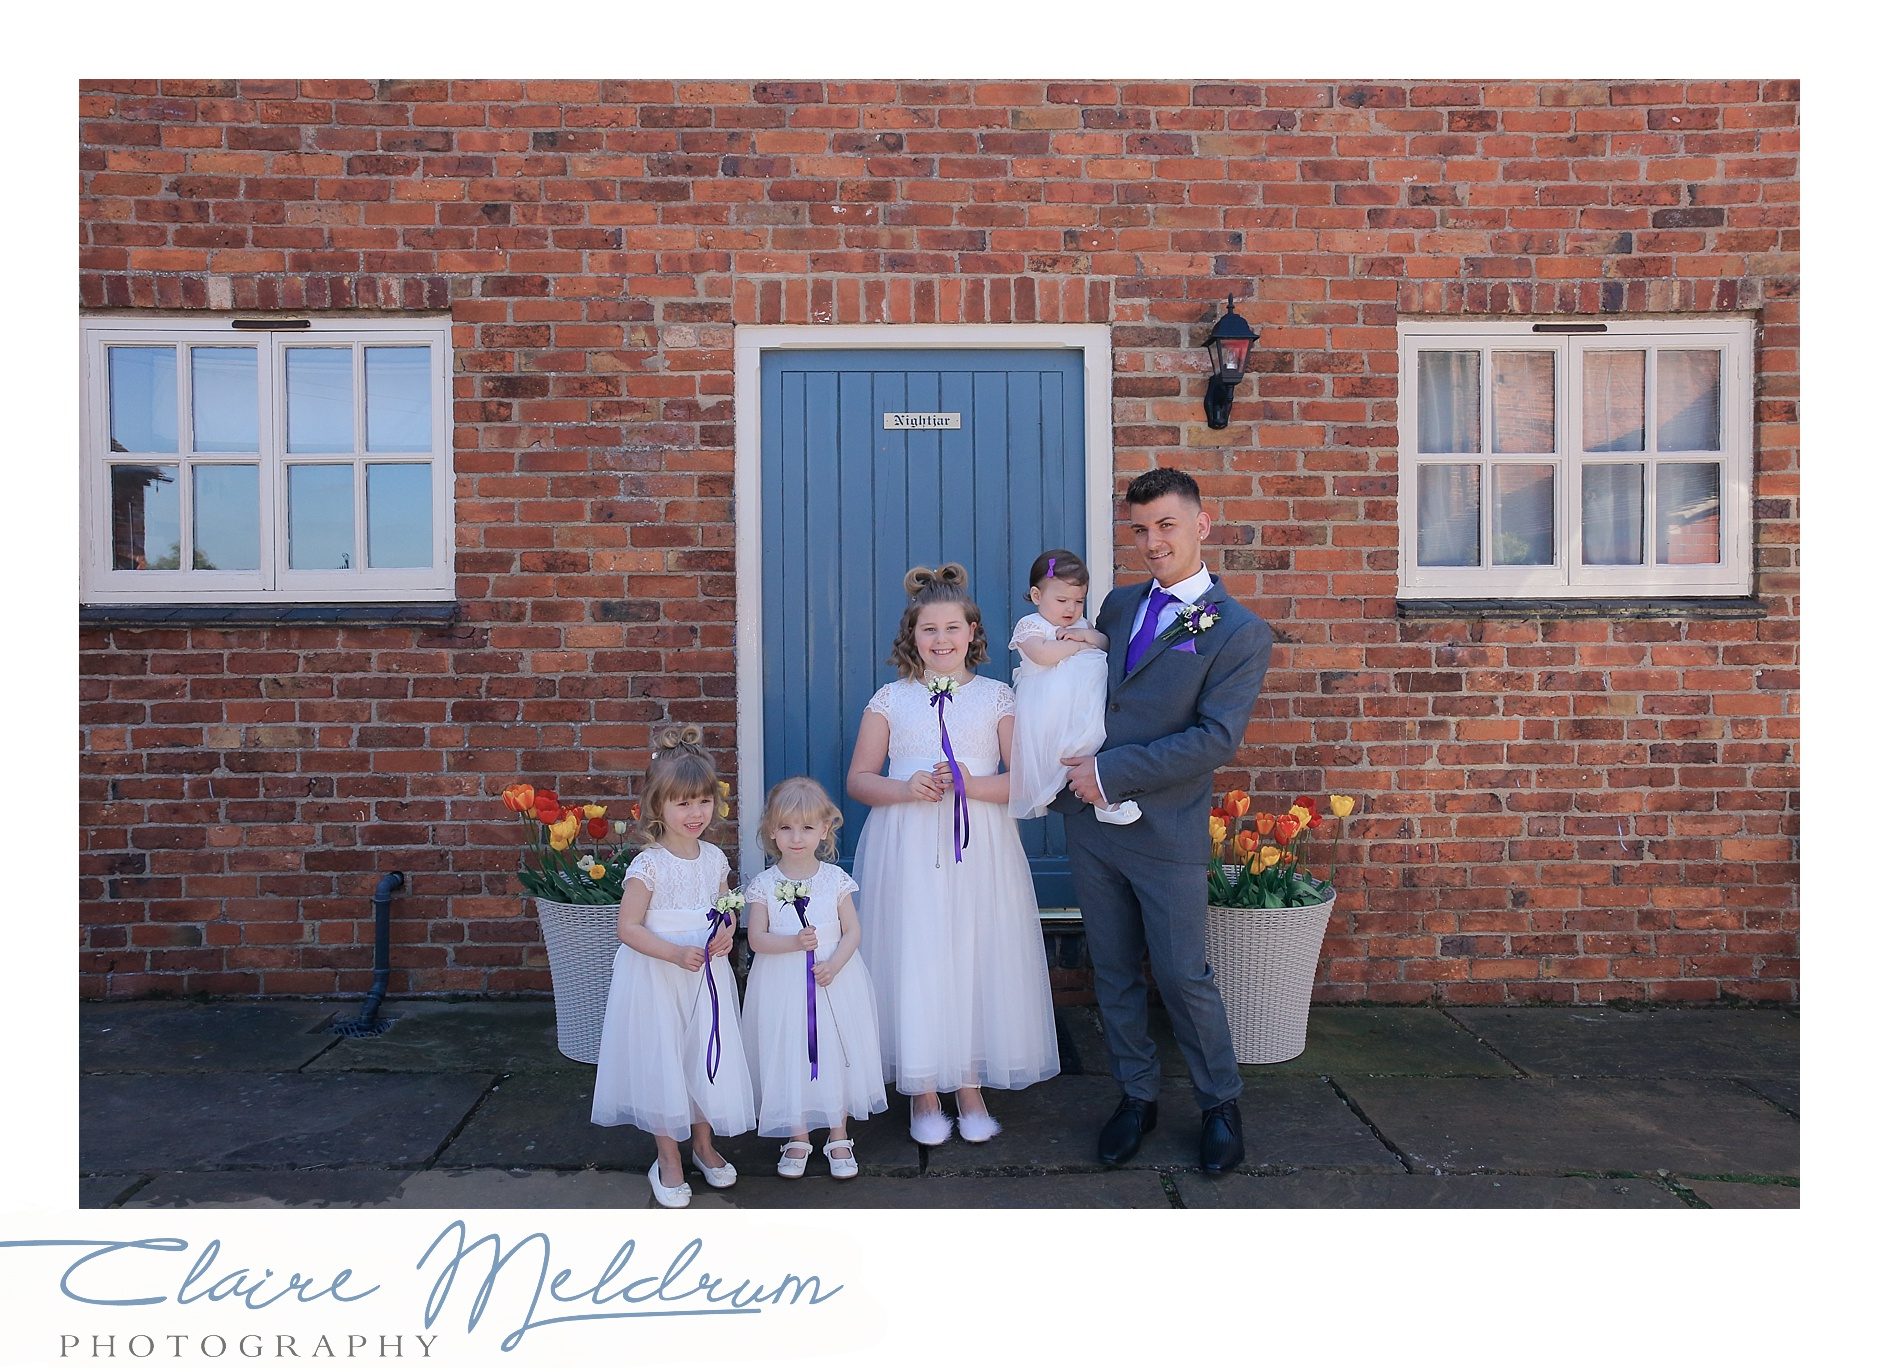 Two grooms and wedding party, Claire Meldrum Photography